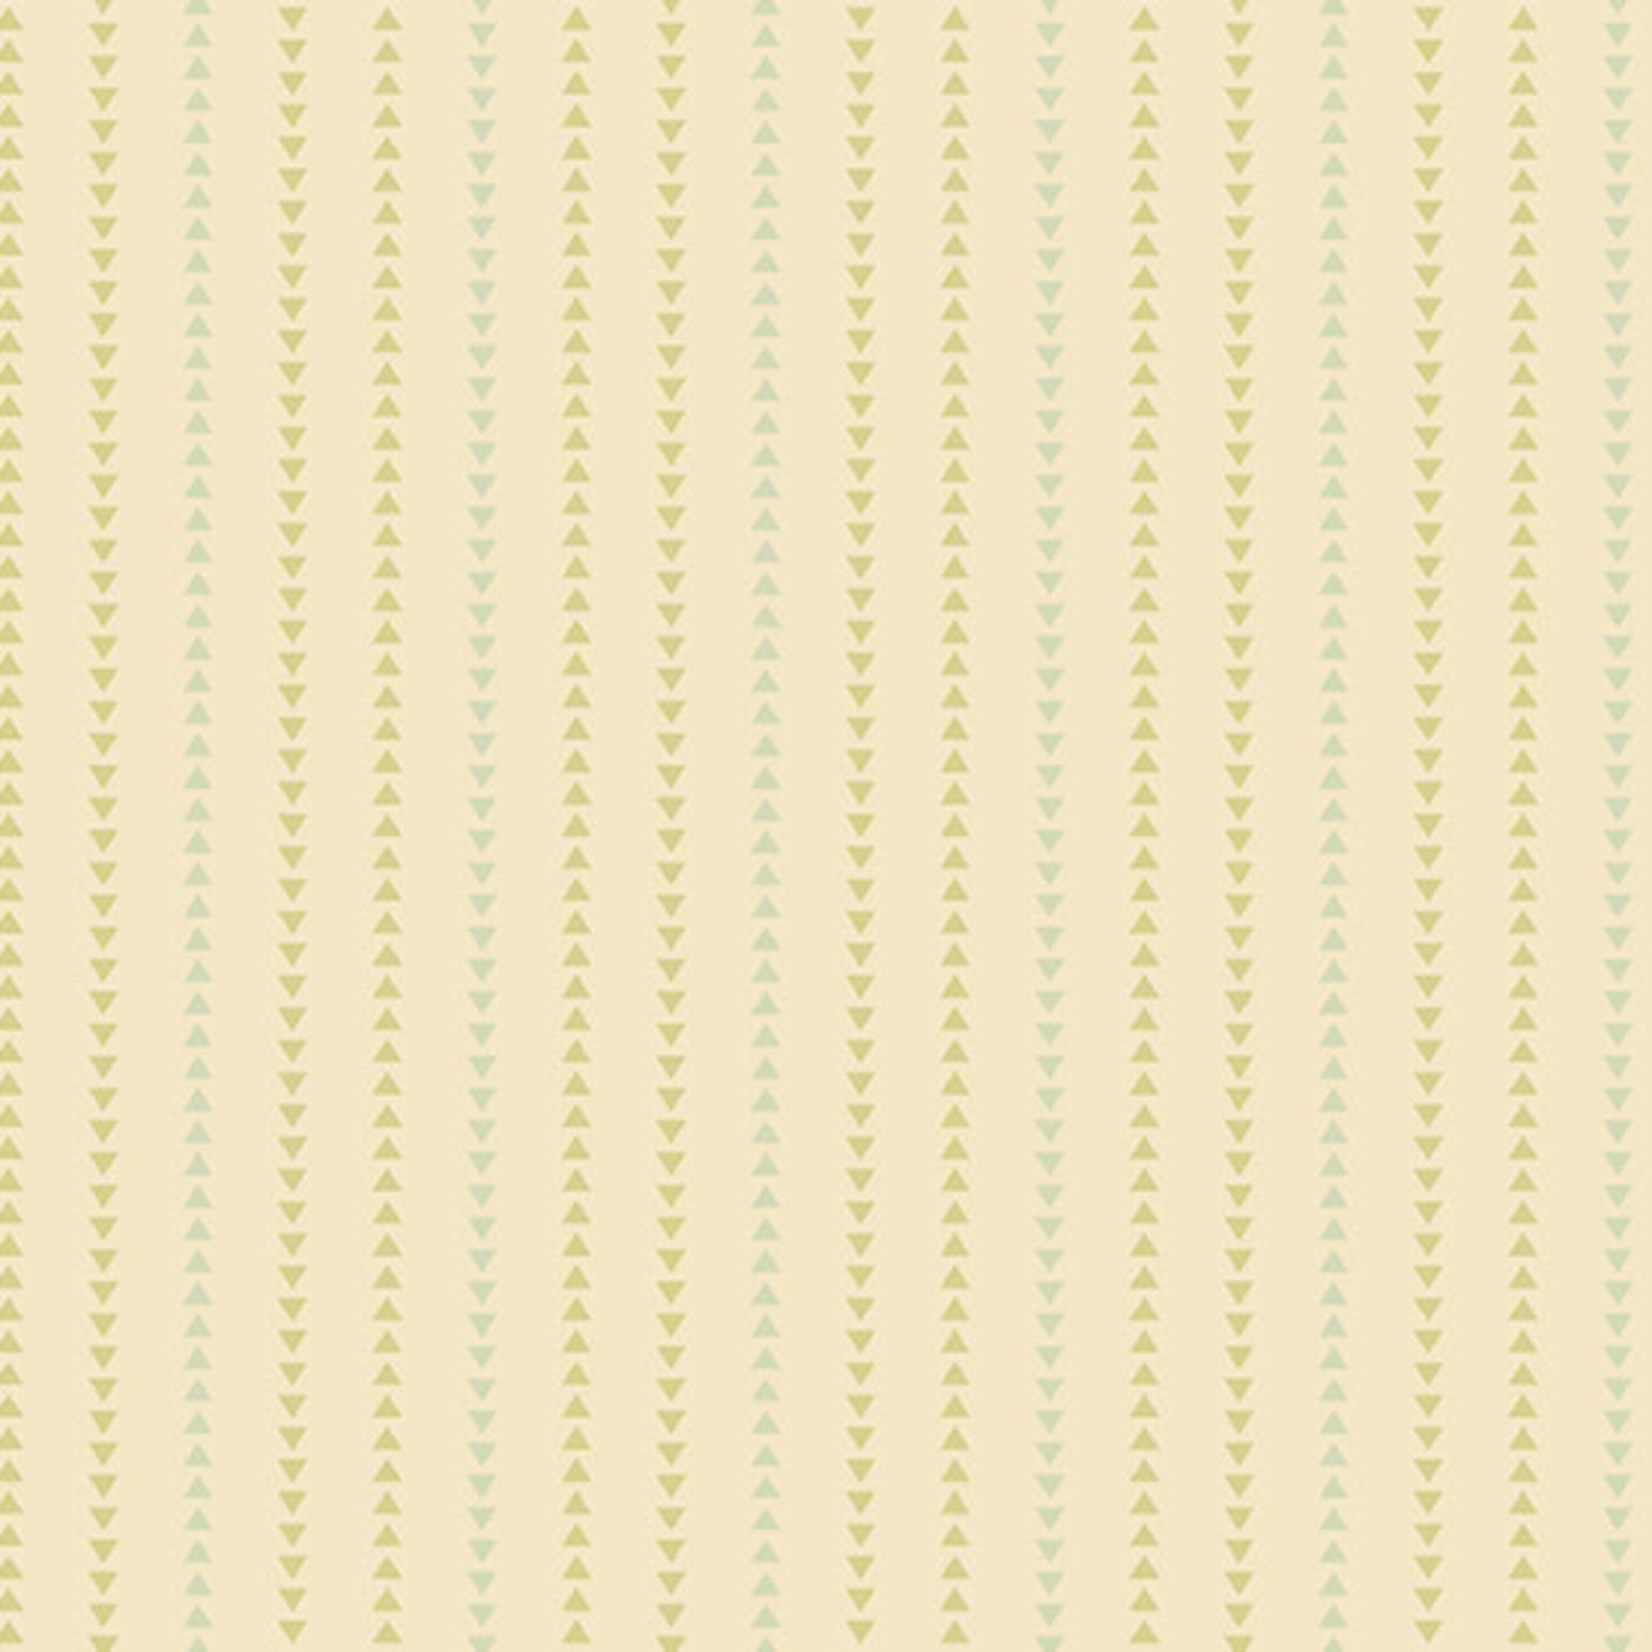 Edyta Sitar Secret Stash - Neutrals, Country Road, Cream (8622-N) $0.20 per cm or $20/m